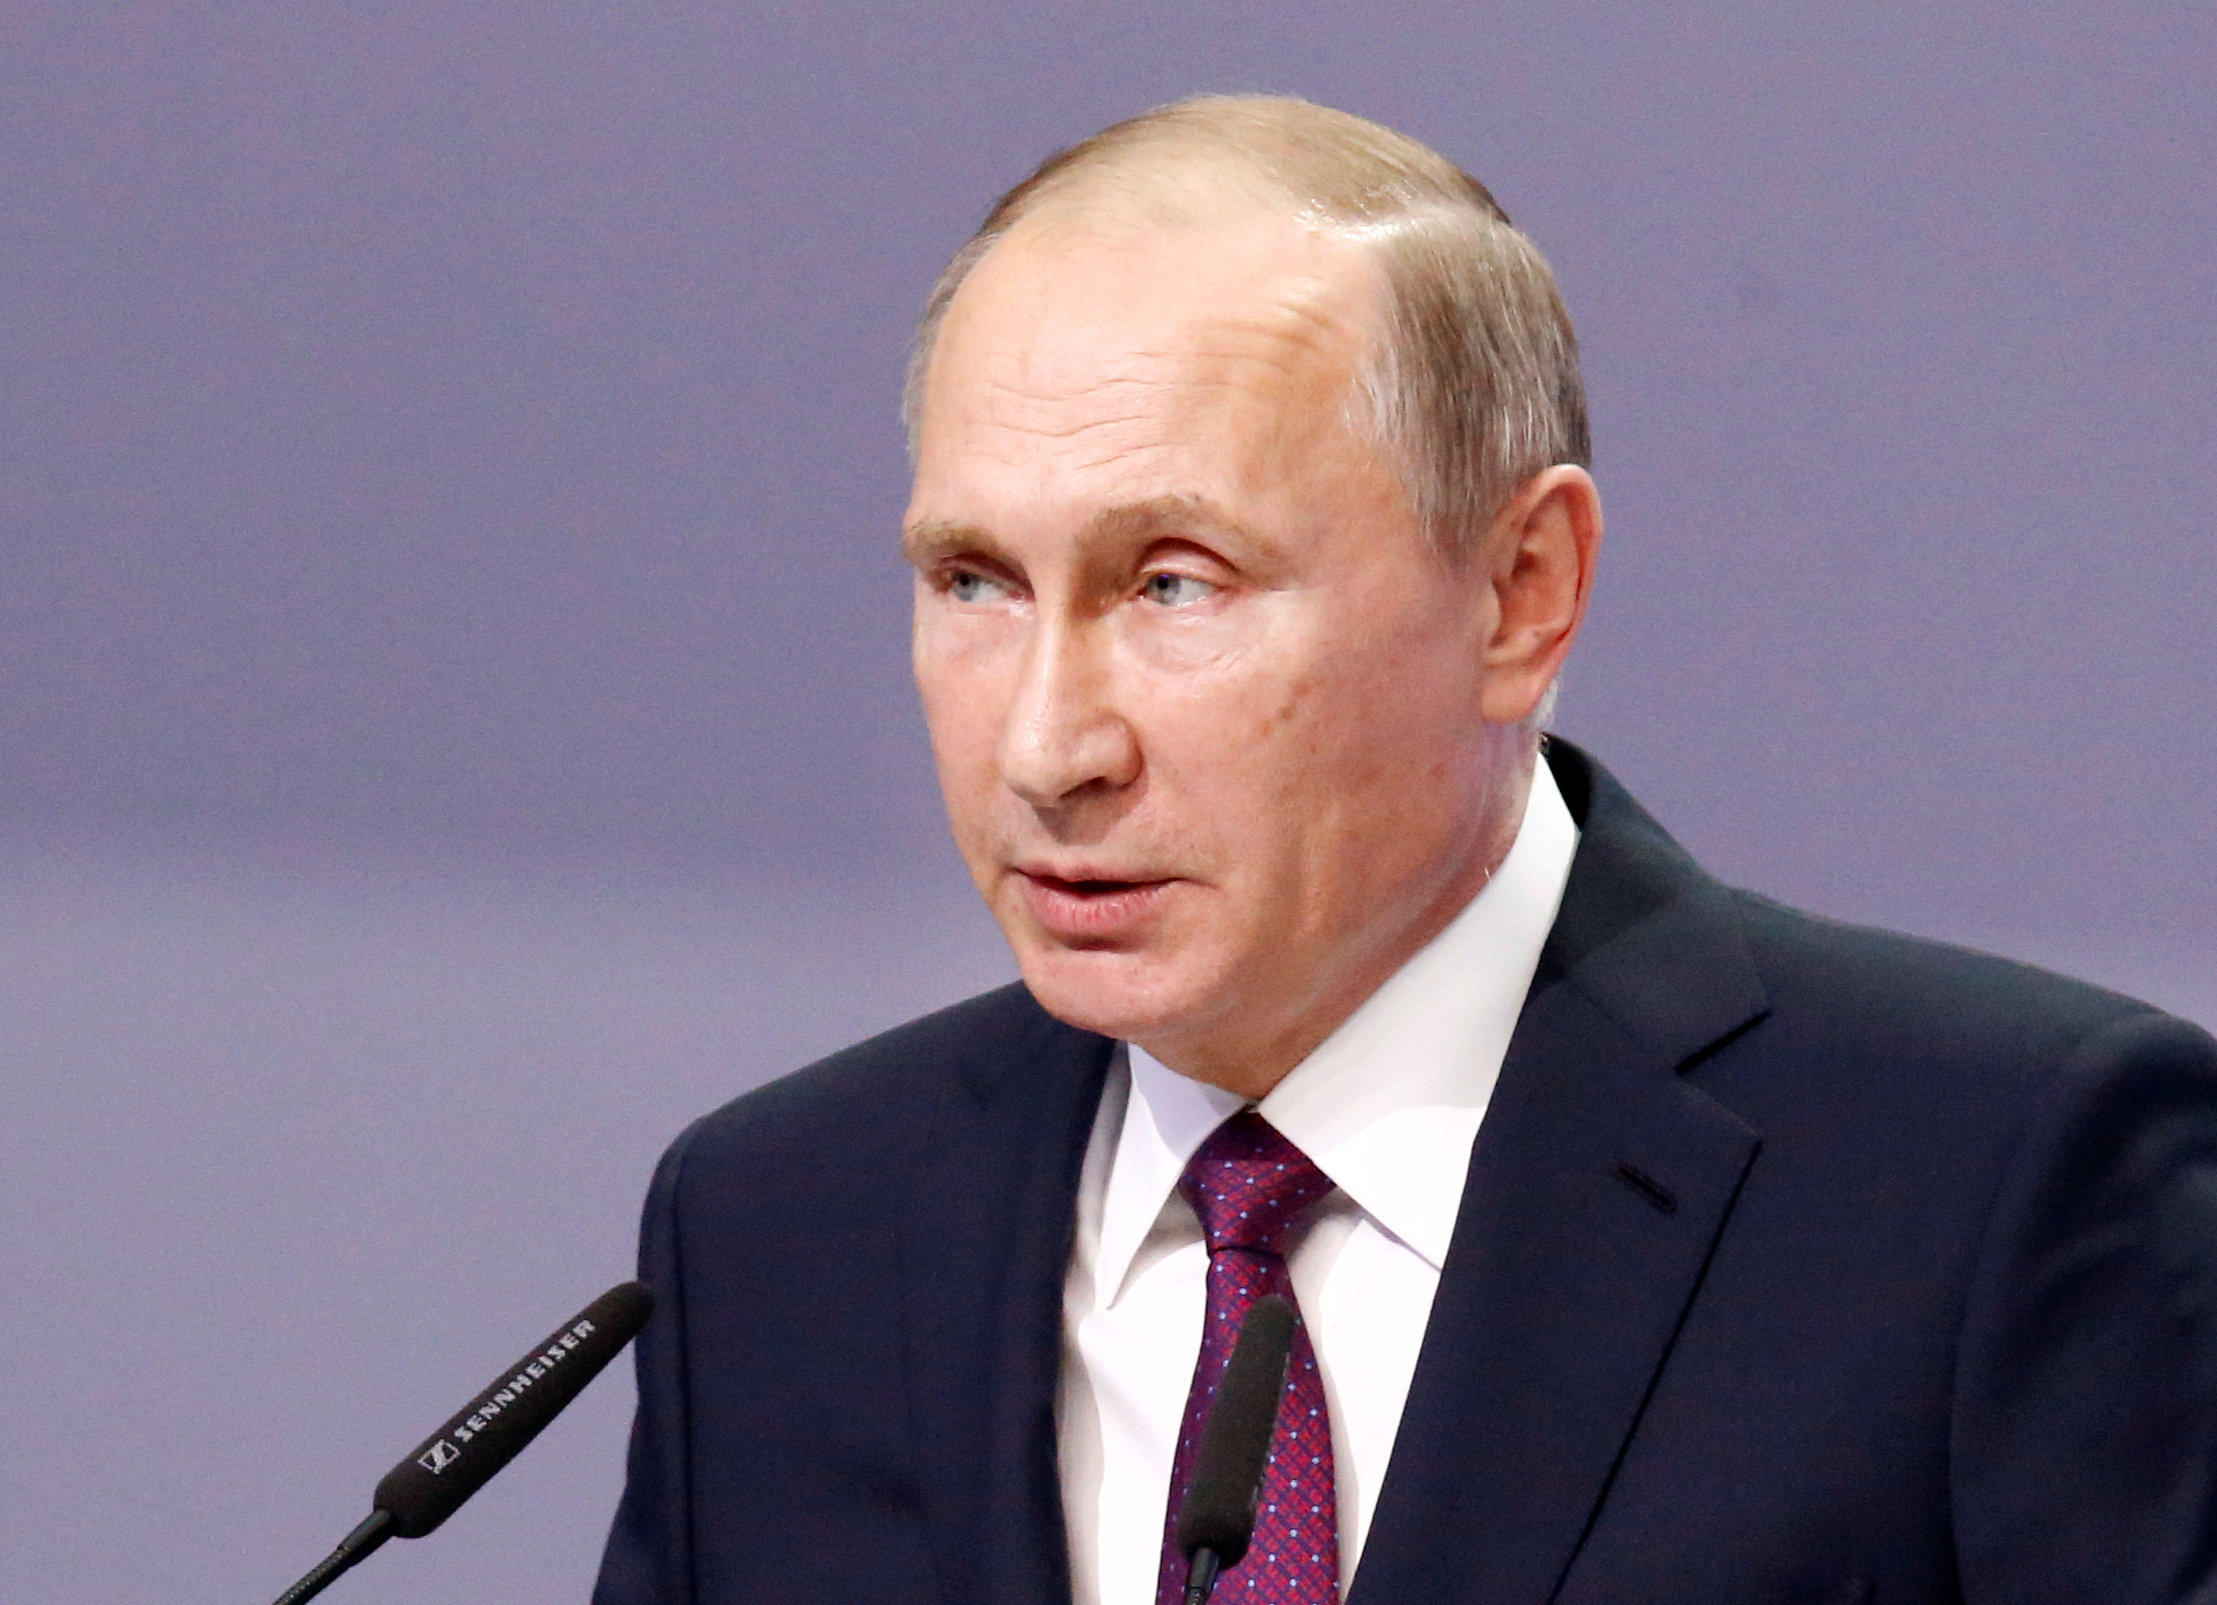 U S Intelligence Believes Dnc Email Hack Ordered By Russian President Vladimir Putin Cbs News